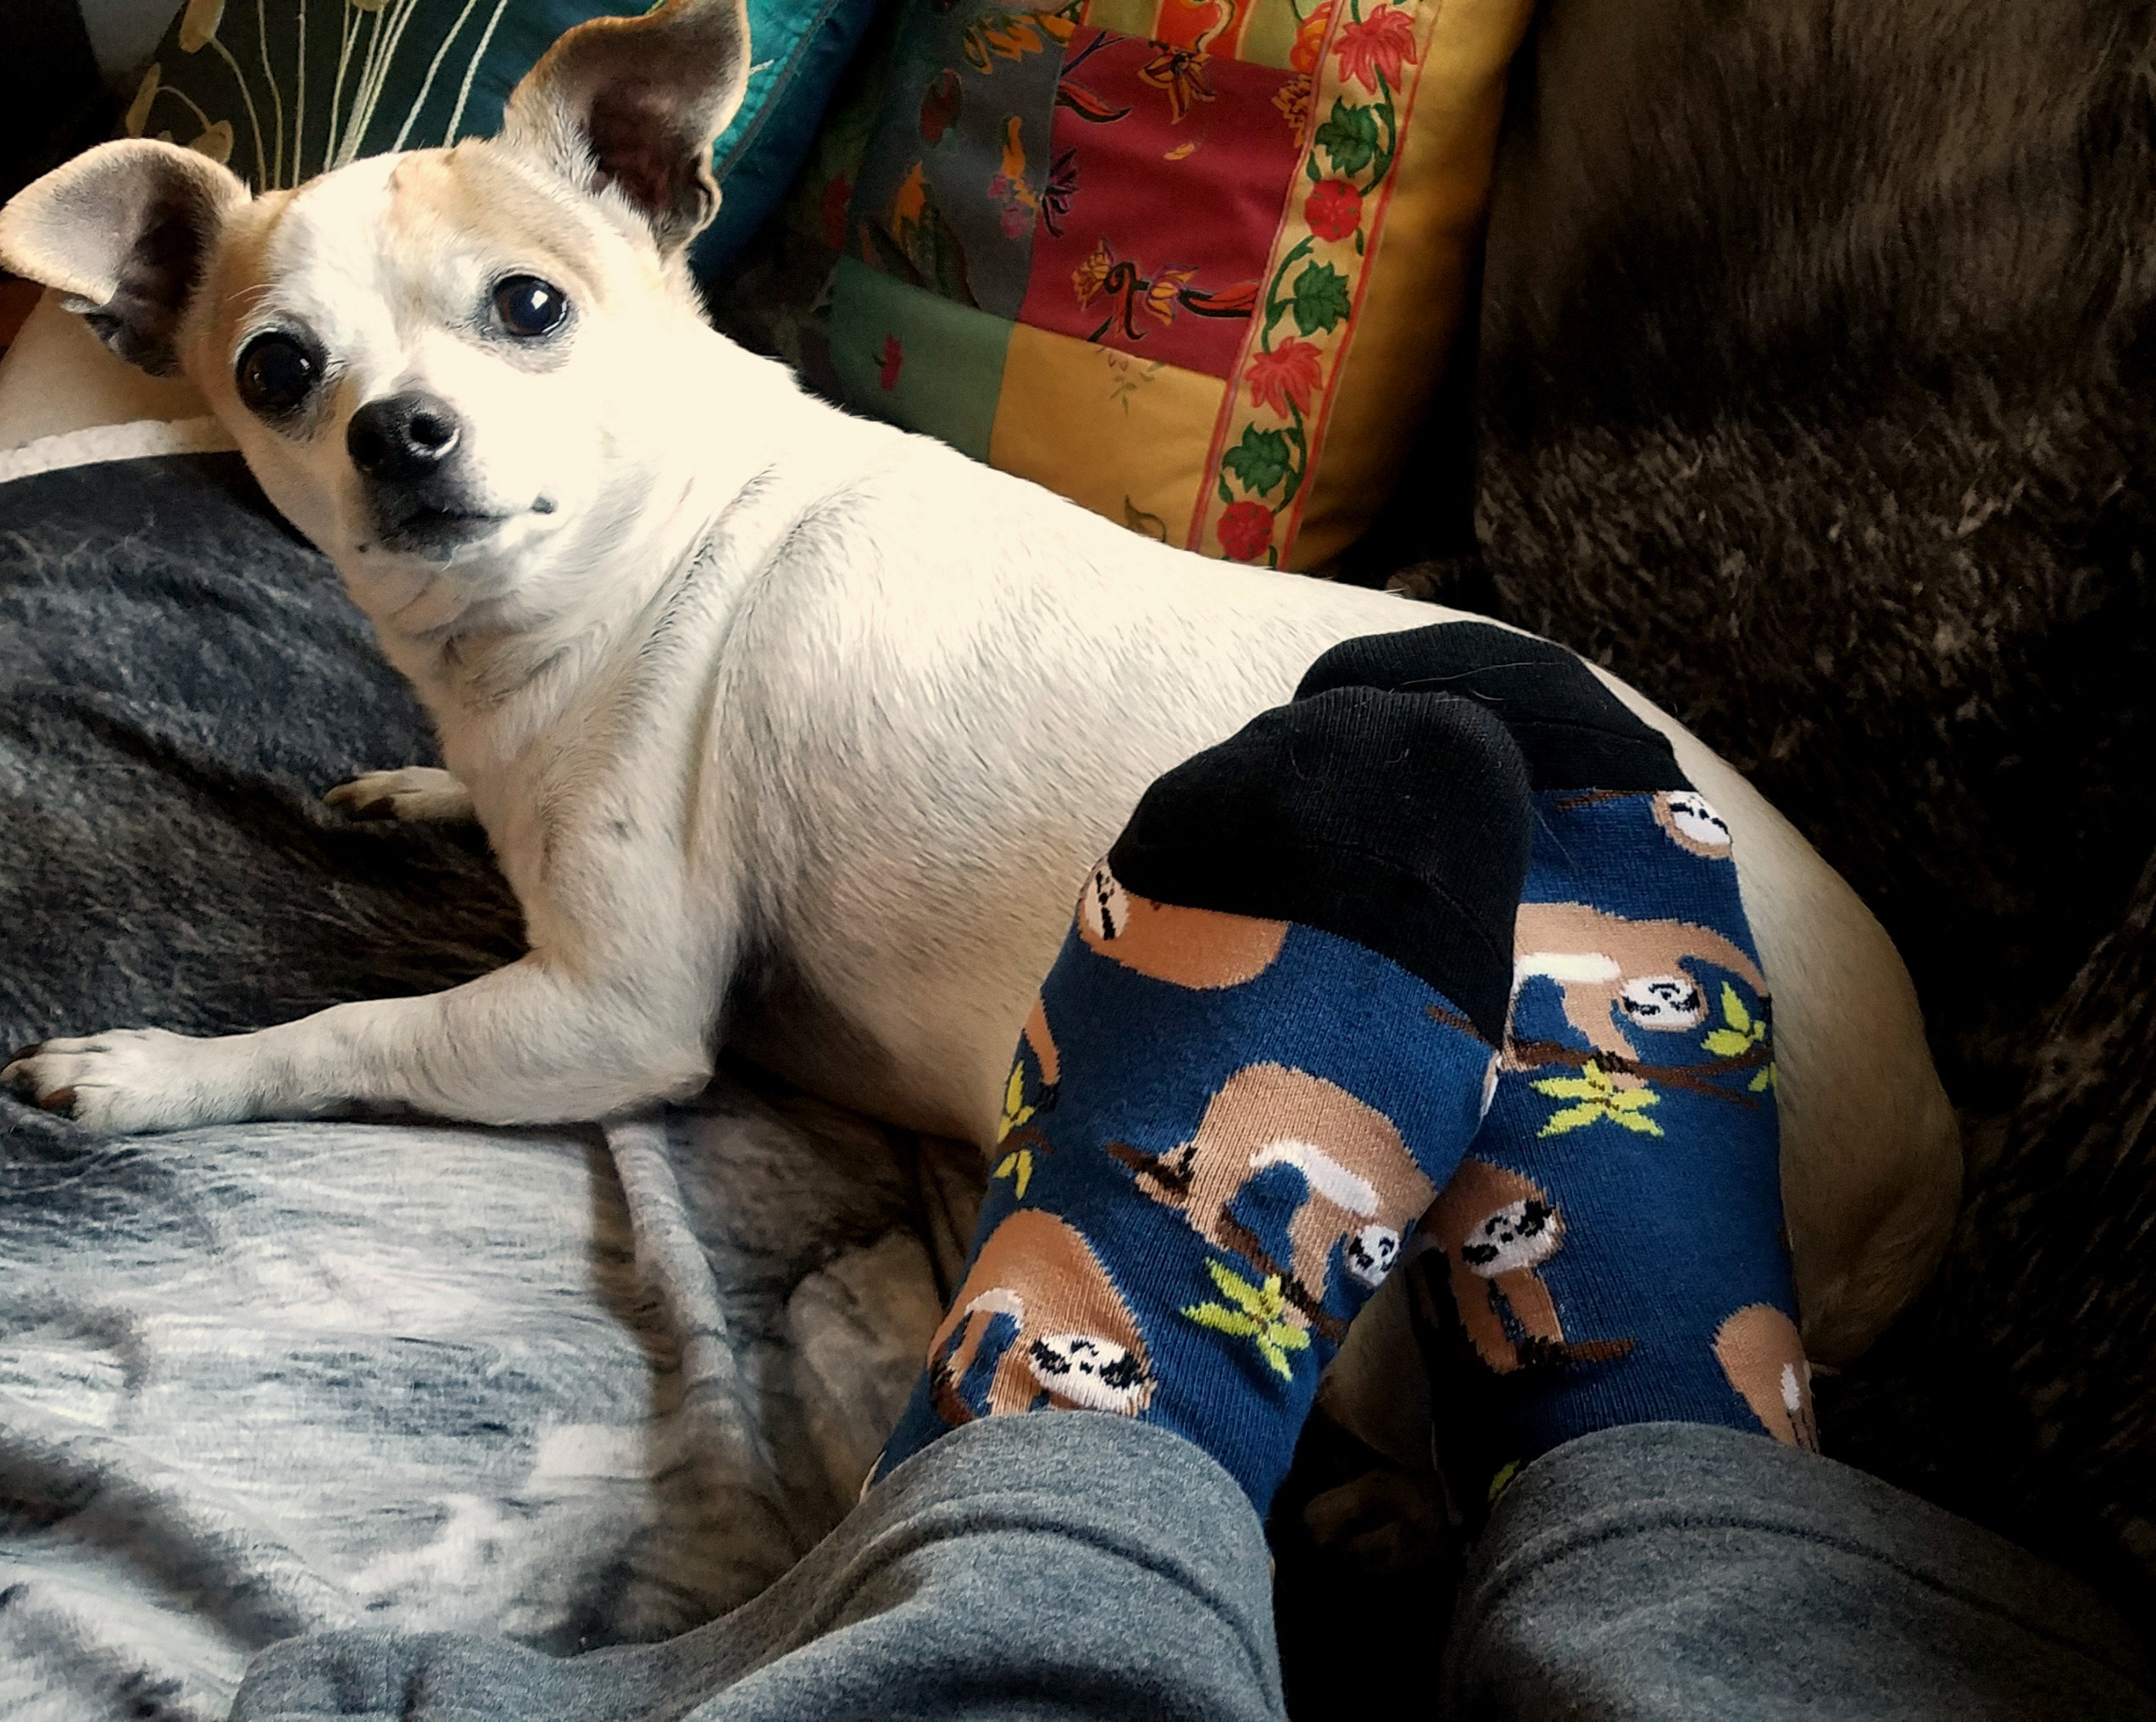 Coco Bean approves of these socks, which help support conservation efforts for endangered animals.